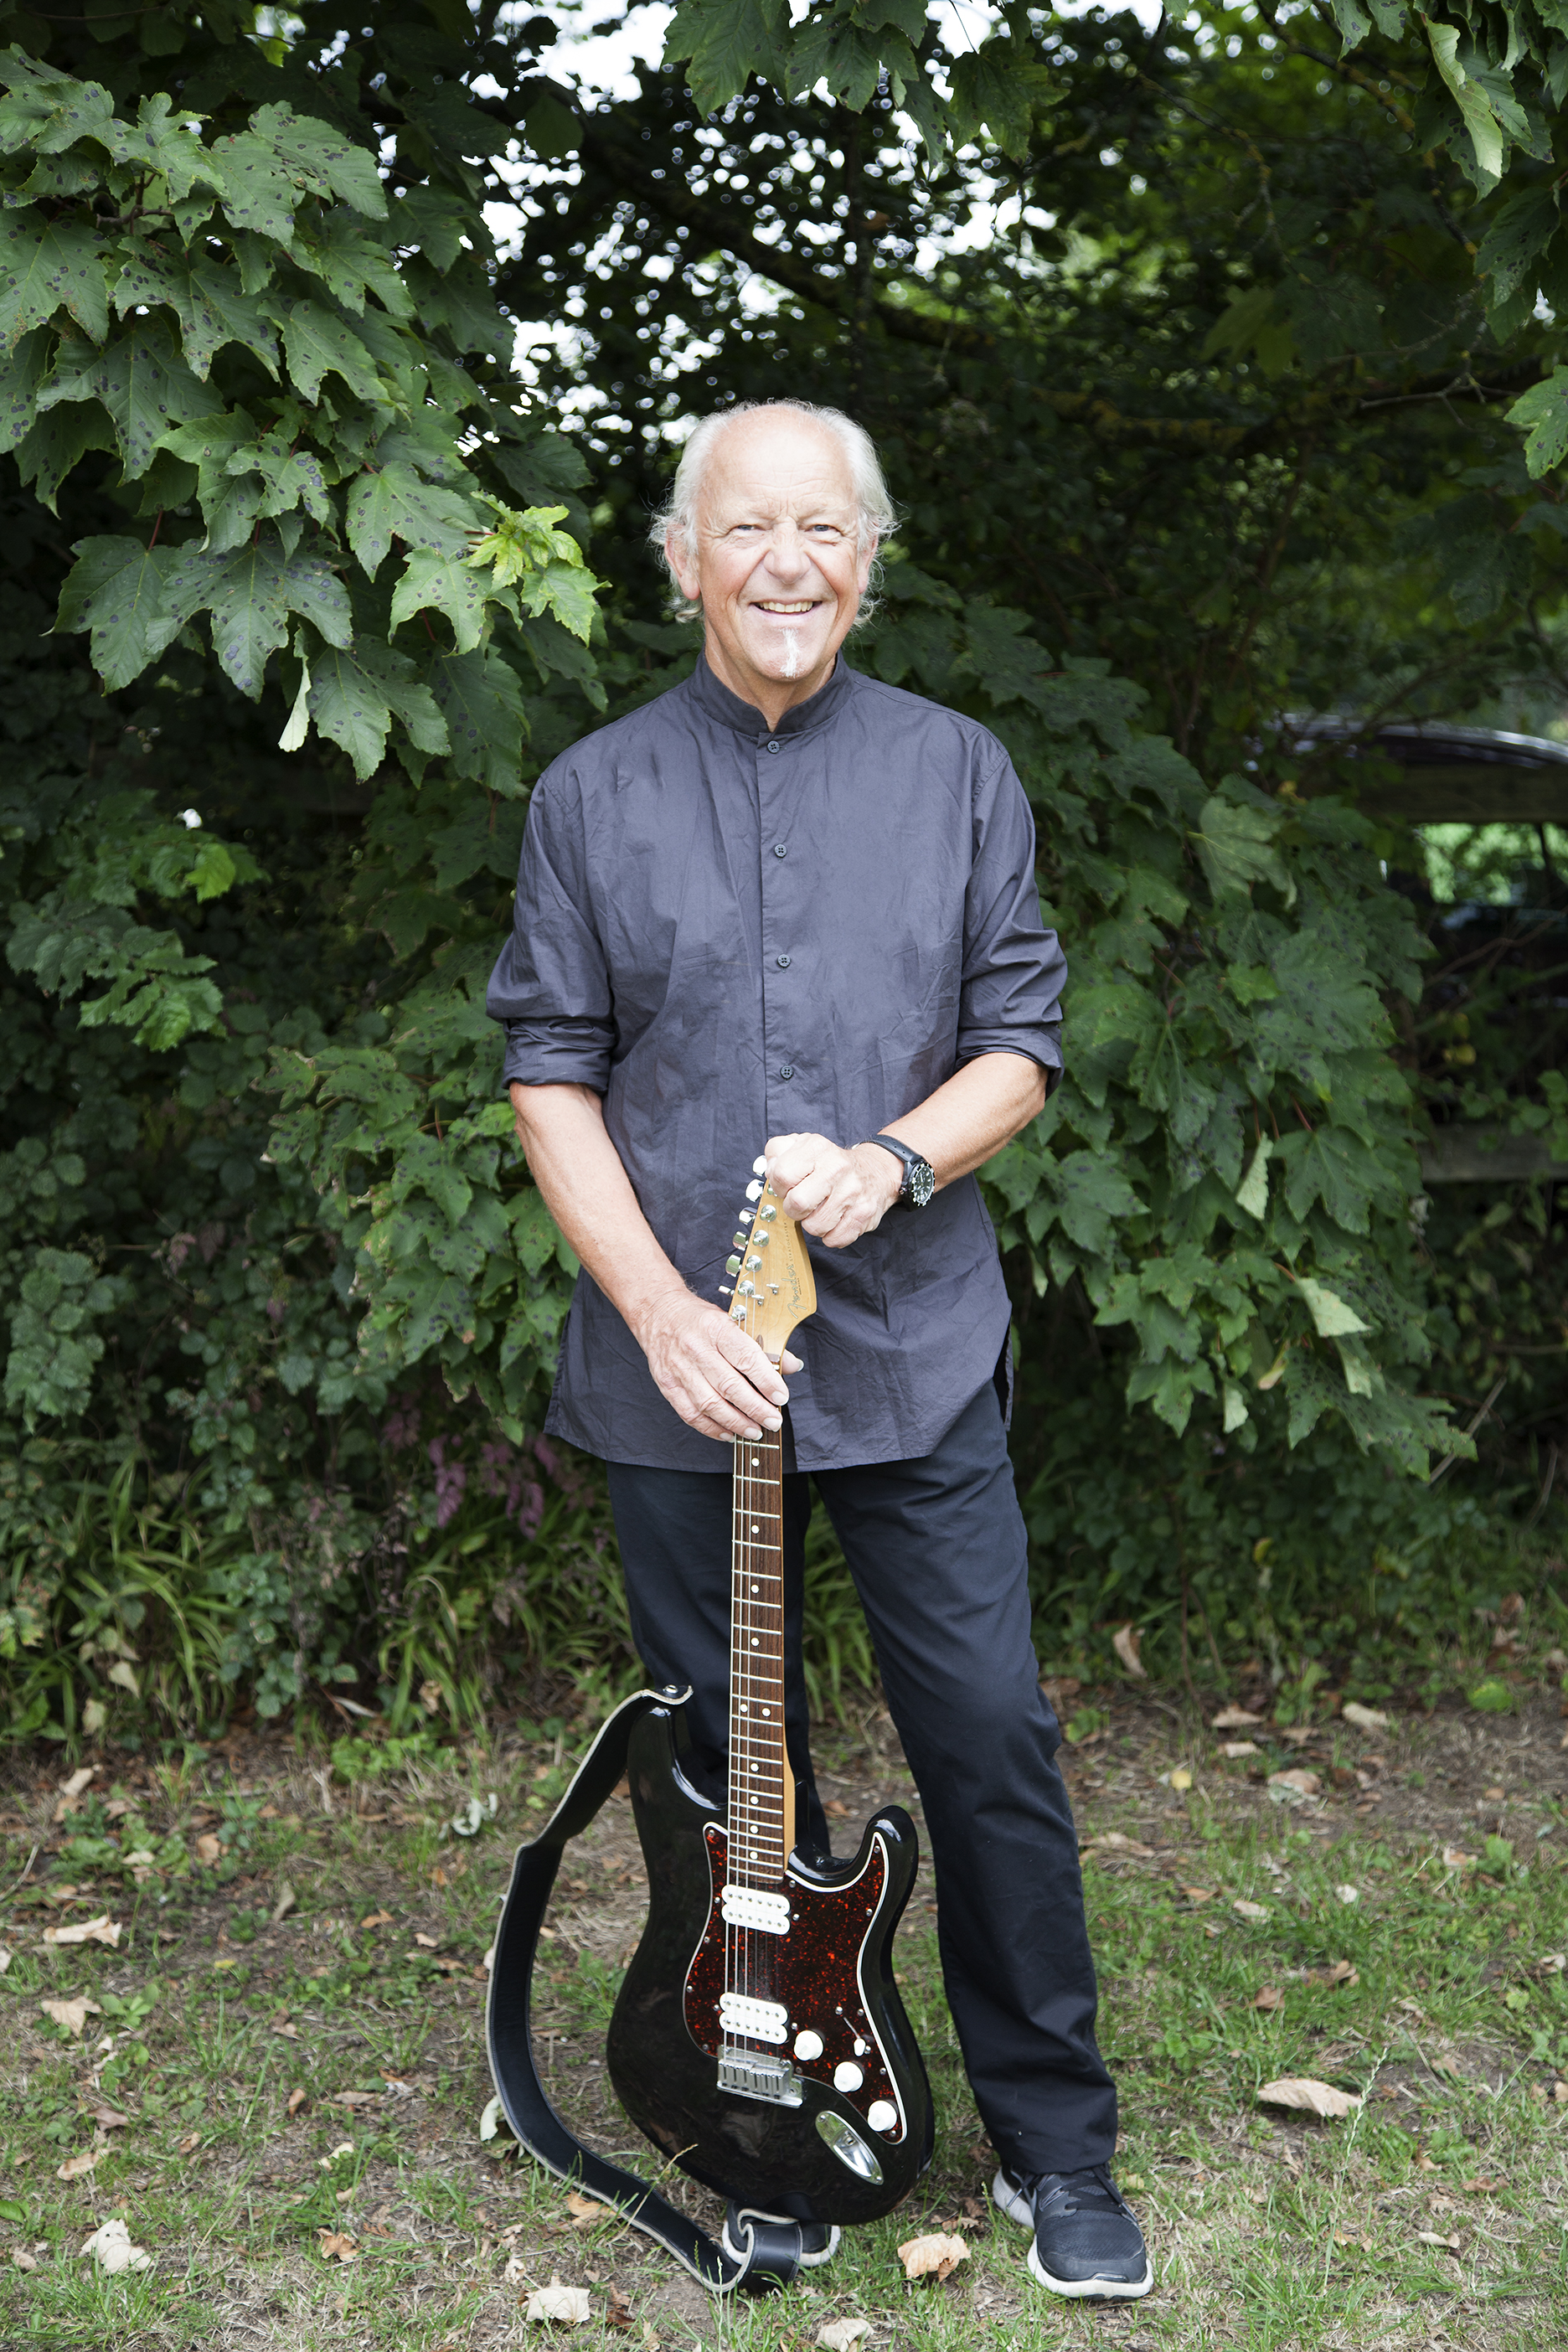 Martin Barre's new solo album 'Roads Less Travelled' is set for an October release. (Photo Credit: Elayne Barre)